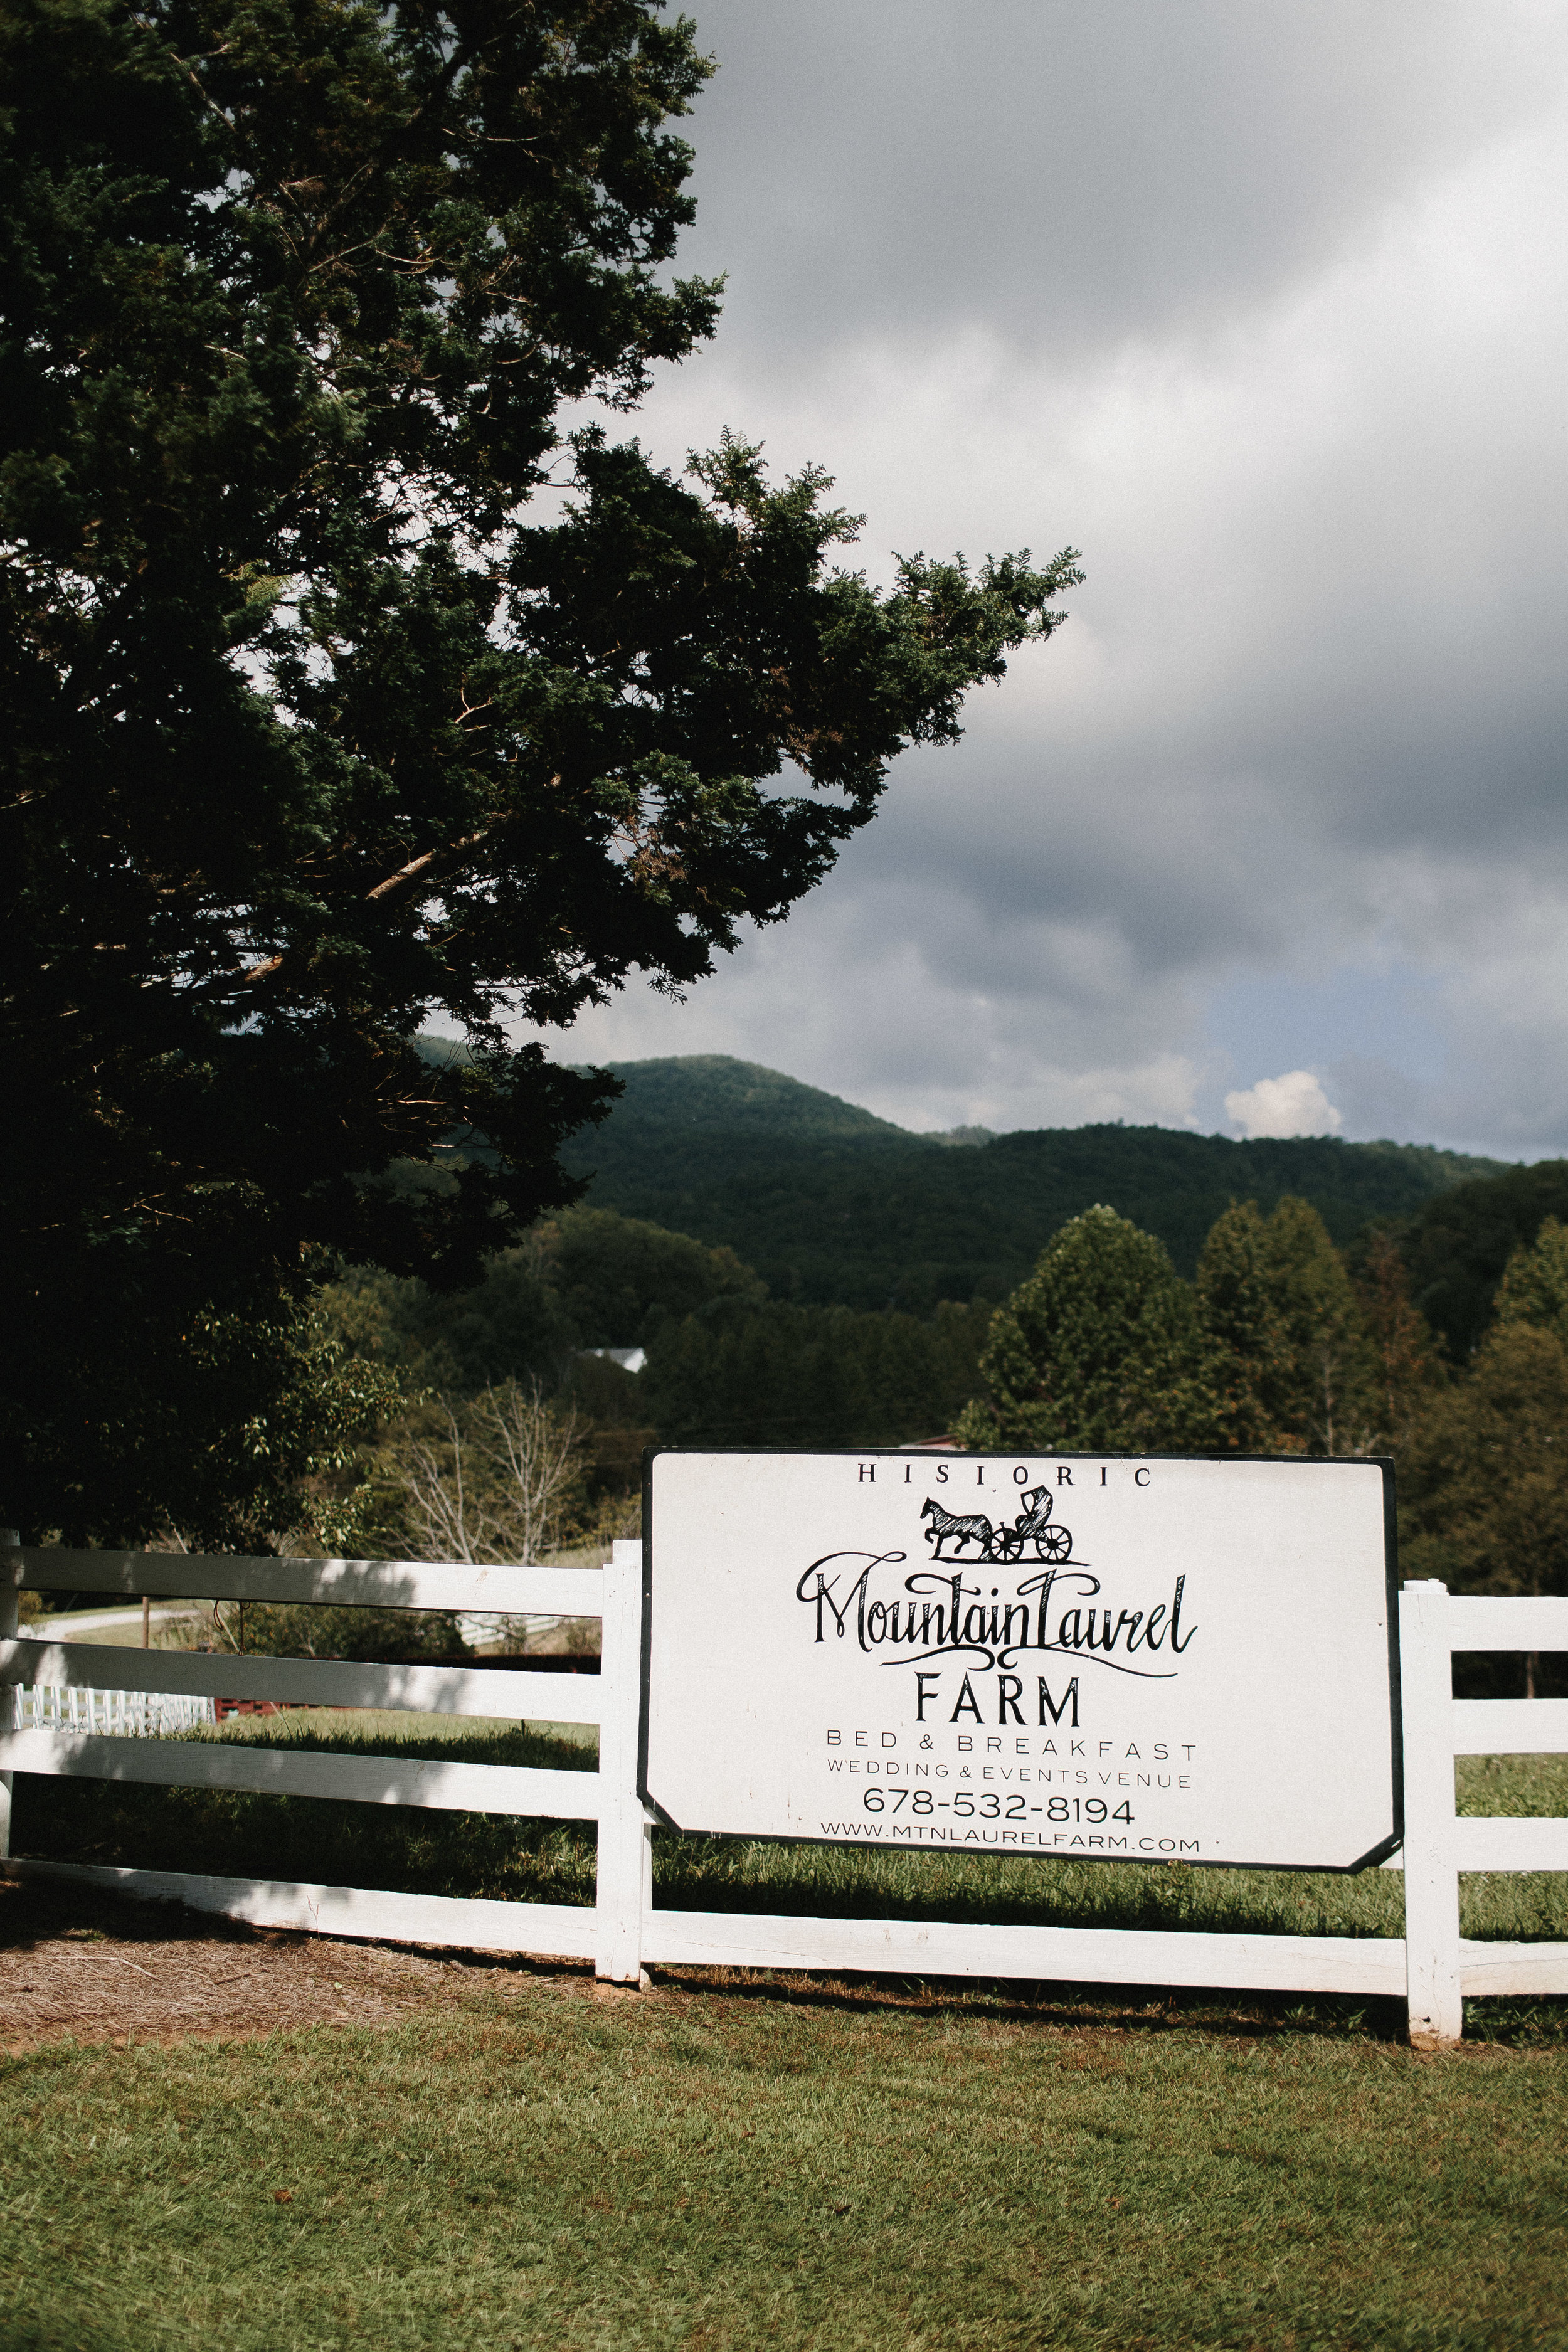 cleveland_georgia_mountain_laurel_farm_natural_classic_timeless_documentary_candid_wedding_emotional_photojournalism_river_west_1001.jpg